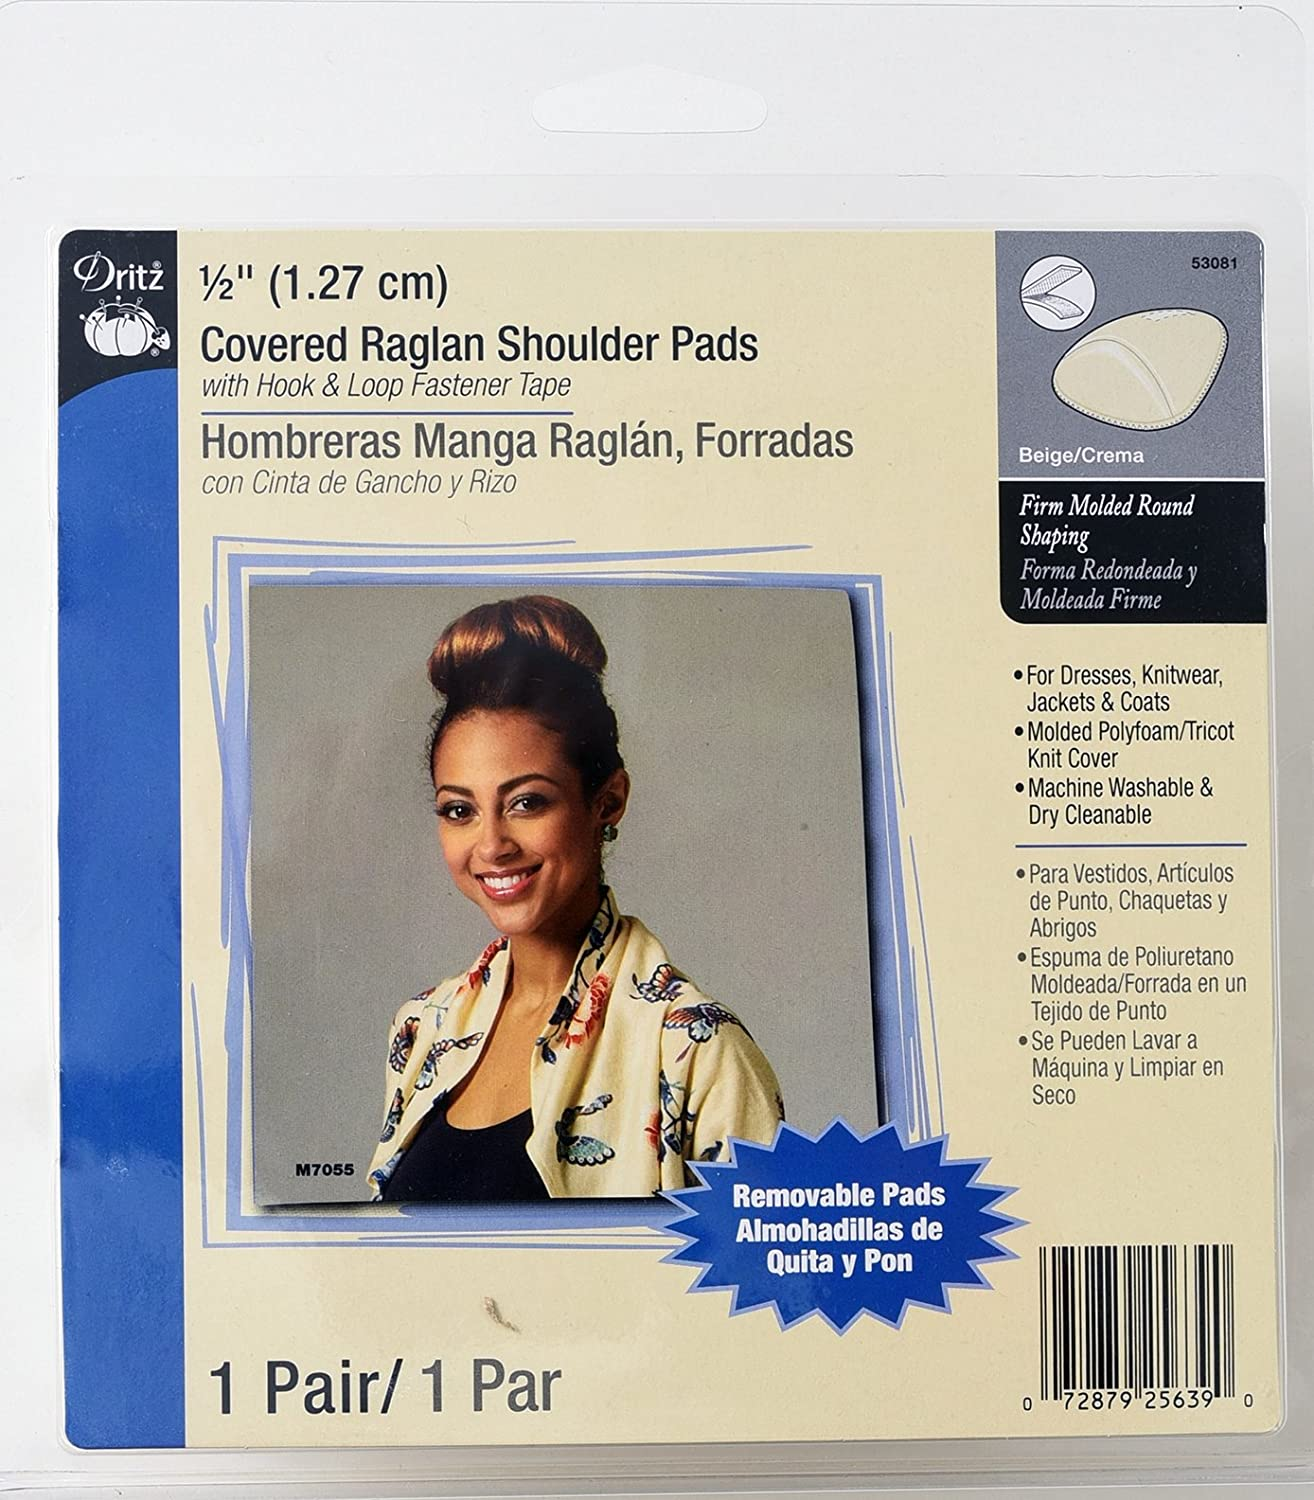 Amazon.com: Dritz 53077-9 Shoulder Pads, Covered Raglan 1/2-Inch White: Arts, Crafts & Sewing